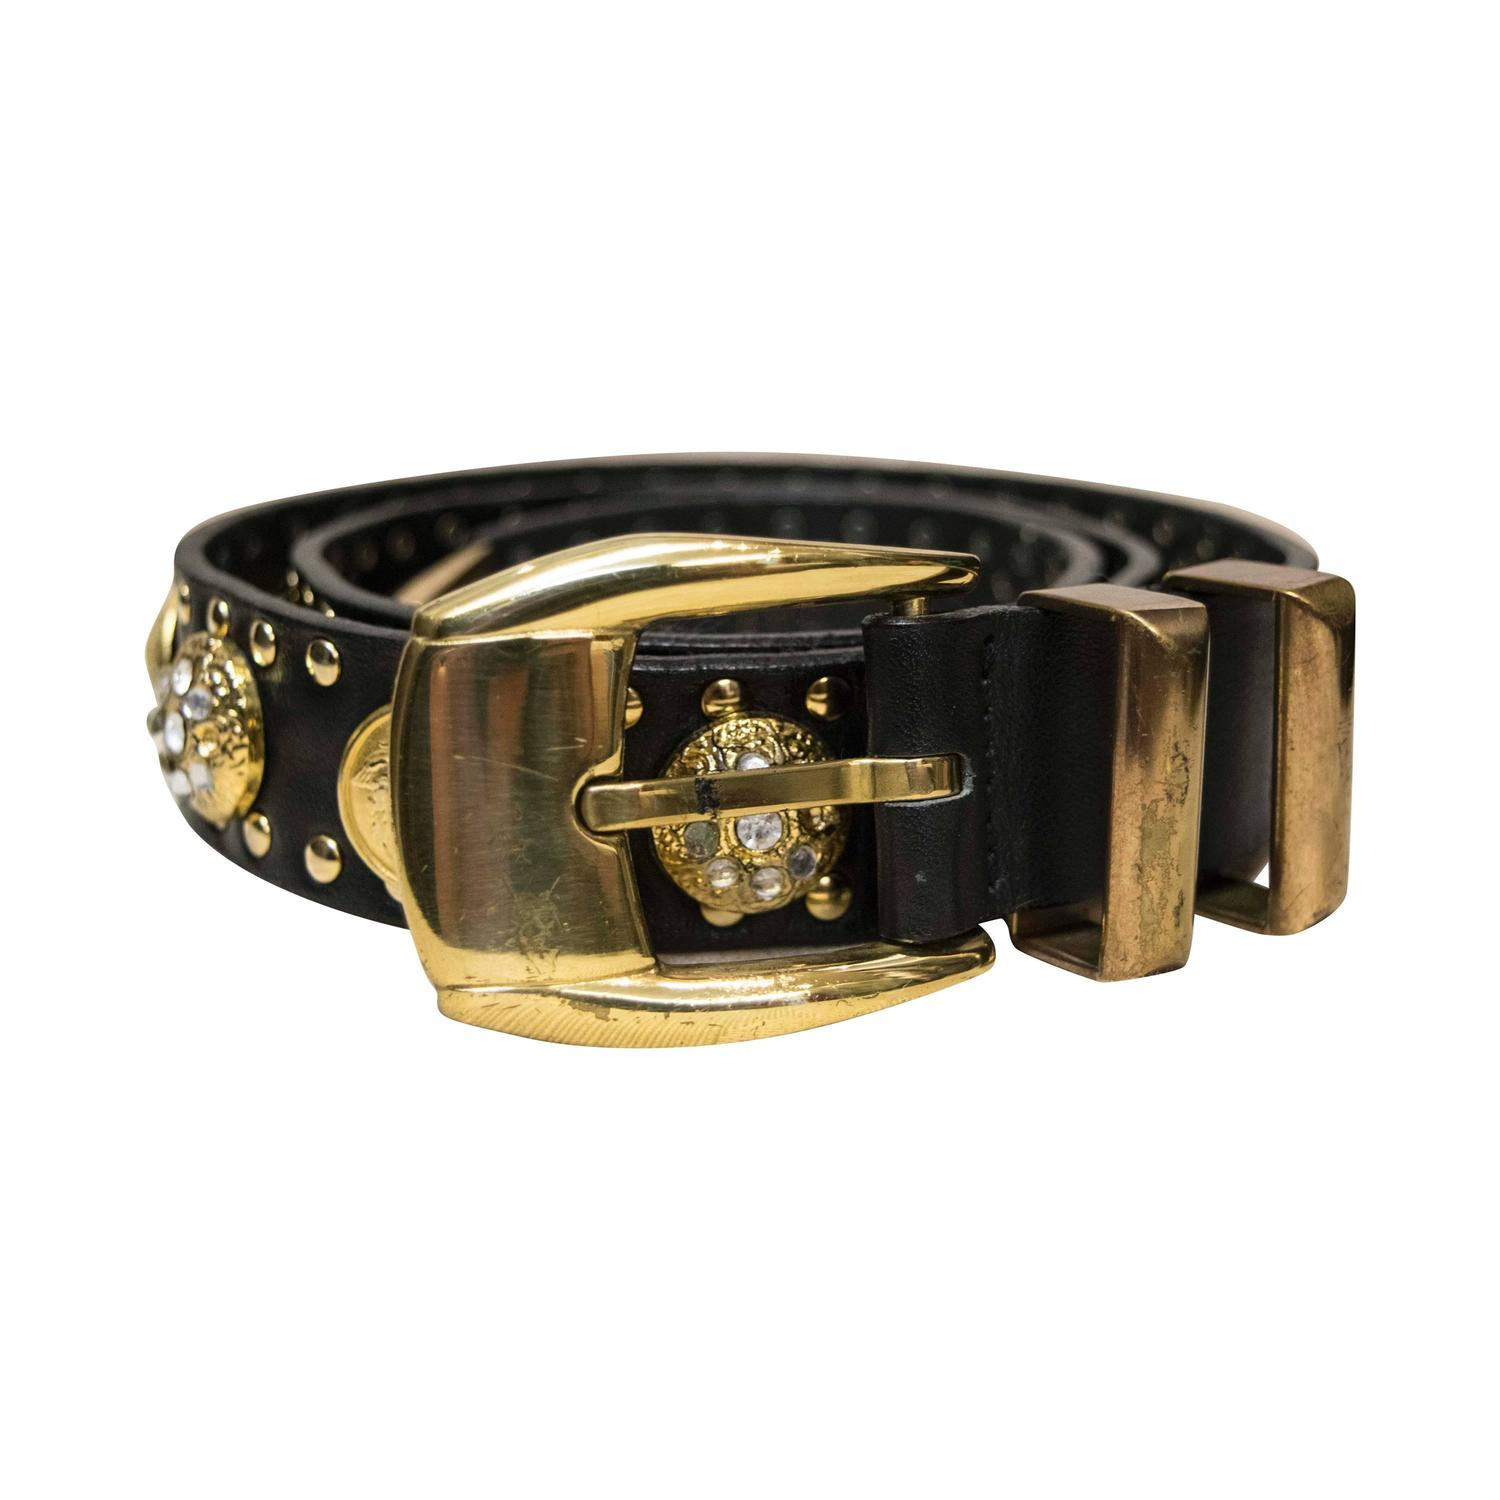 1990s versace leather belt with gold studs at 1stdibs